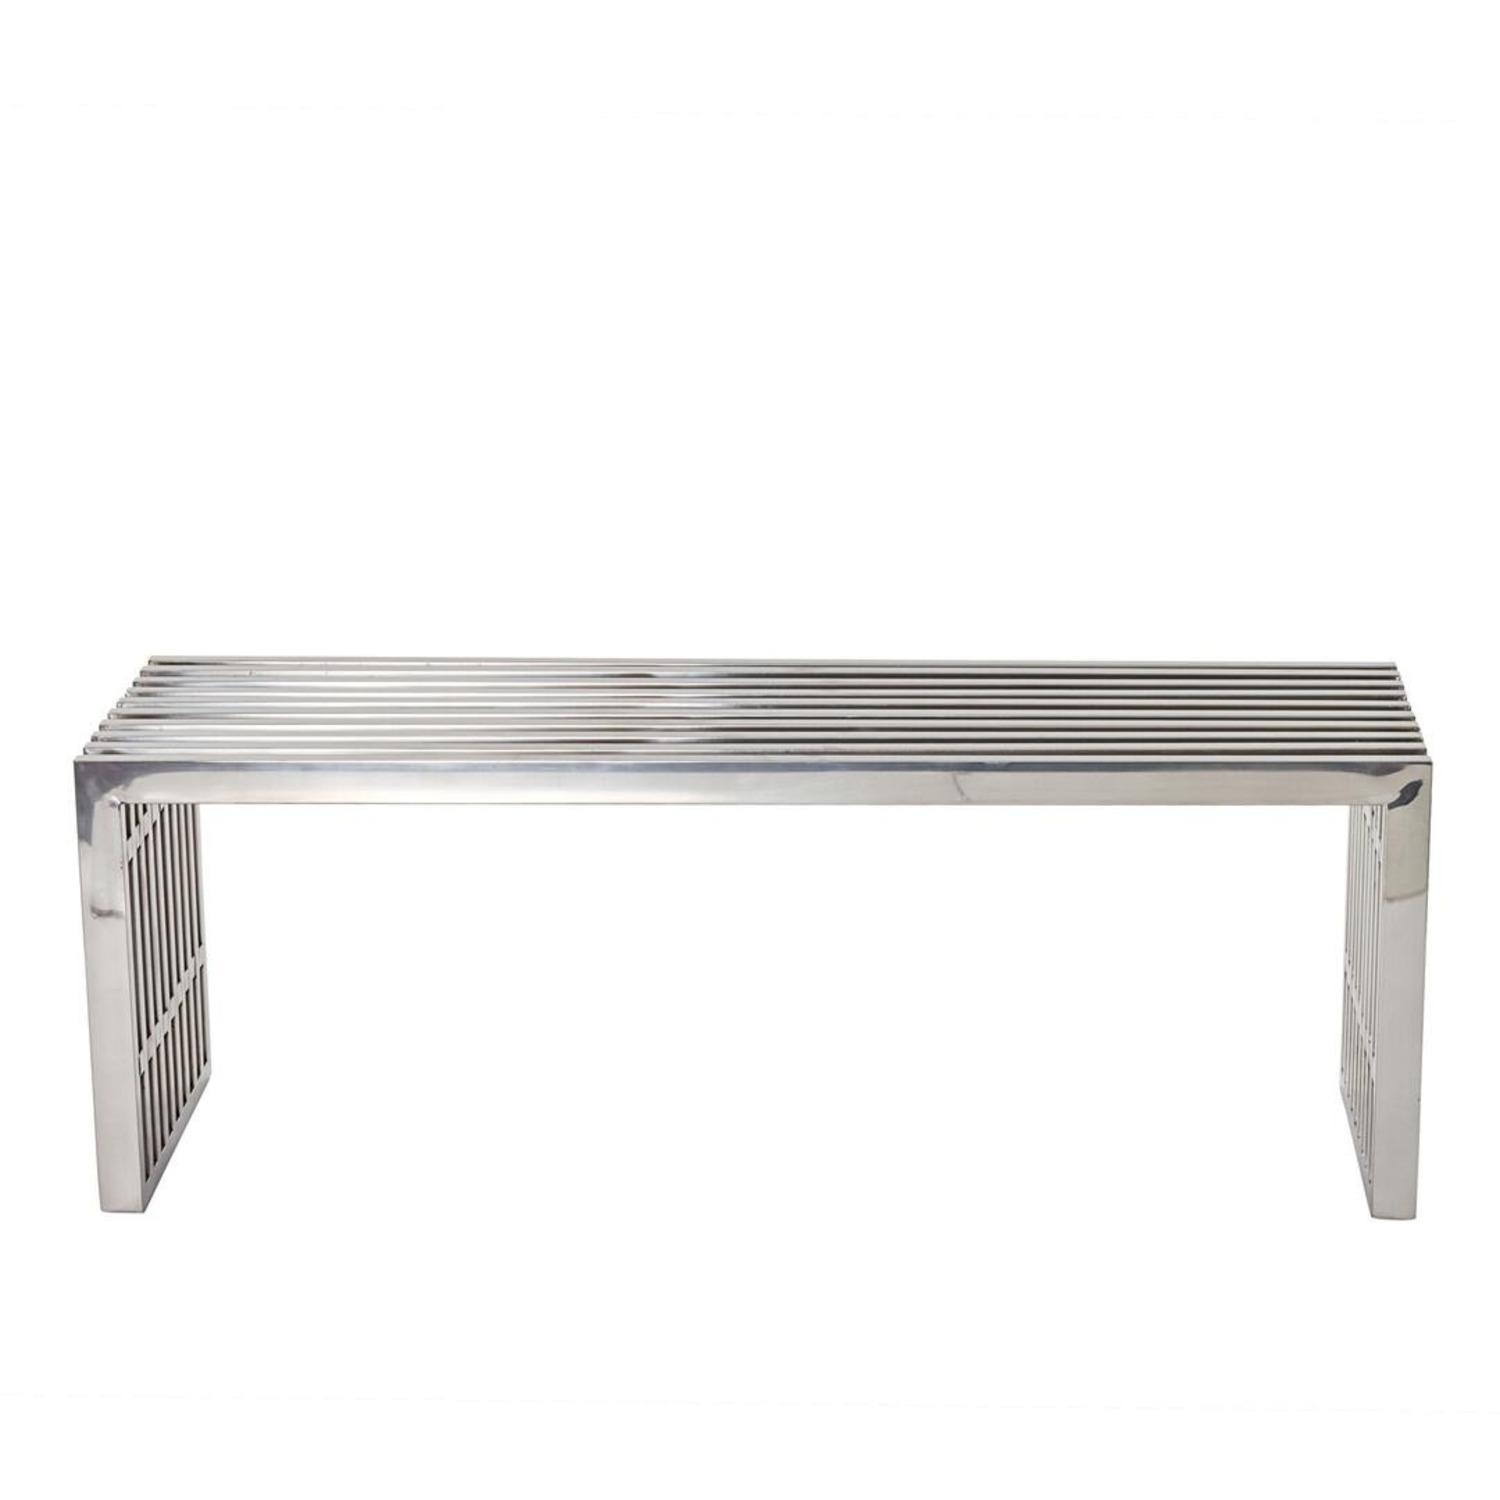 Bench In Silver Medium Stainless Steel Finish - image-0